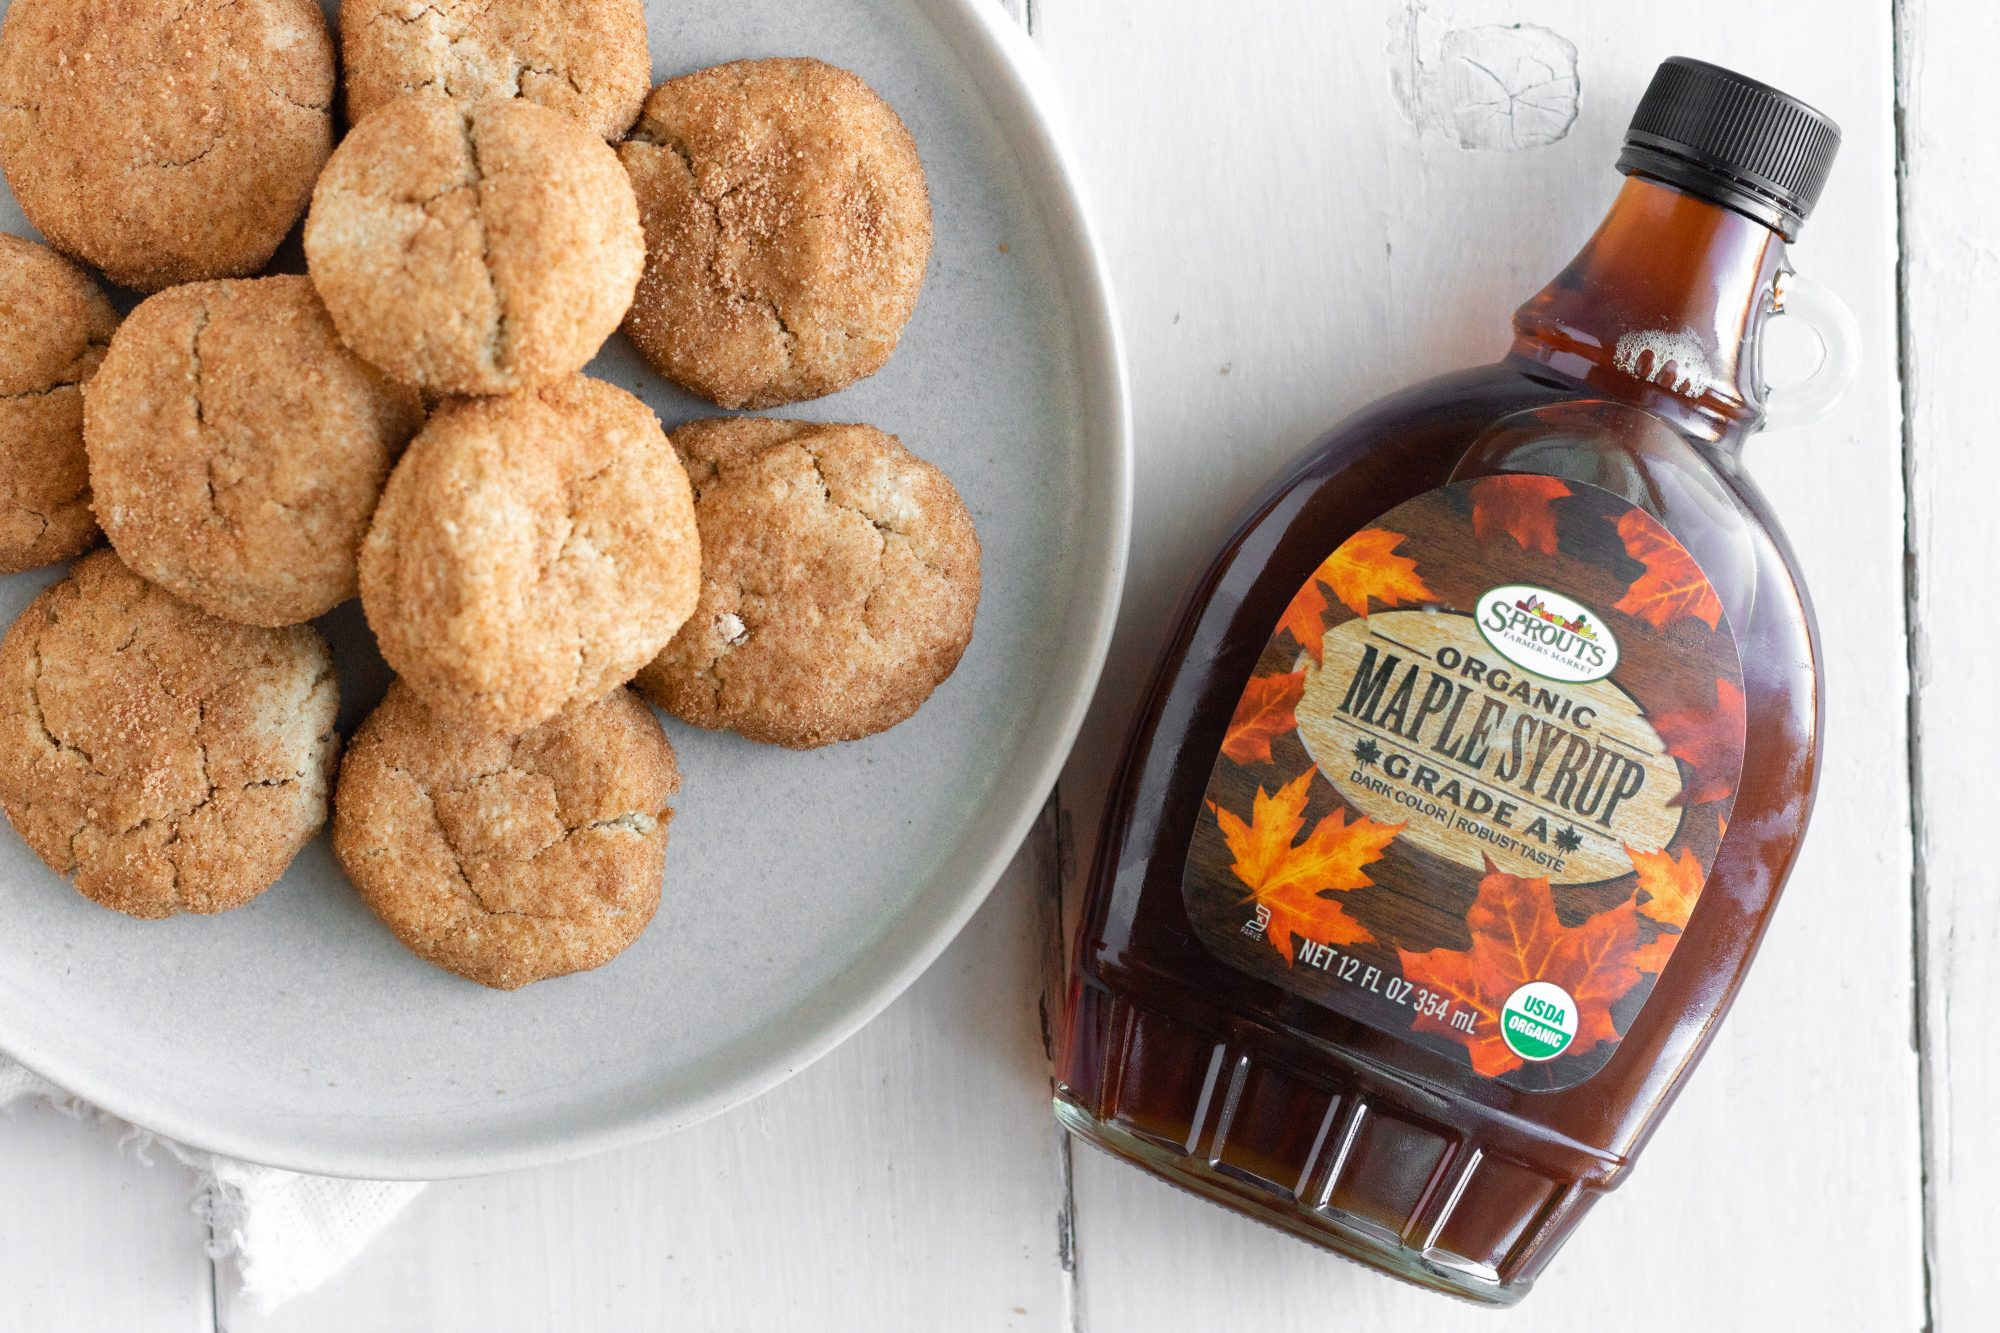 Snickerdoodles with Maple Syrup from Sprouts